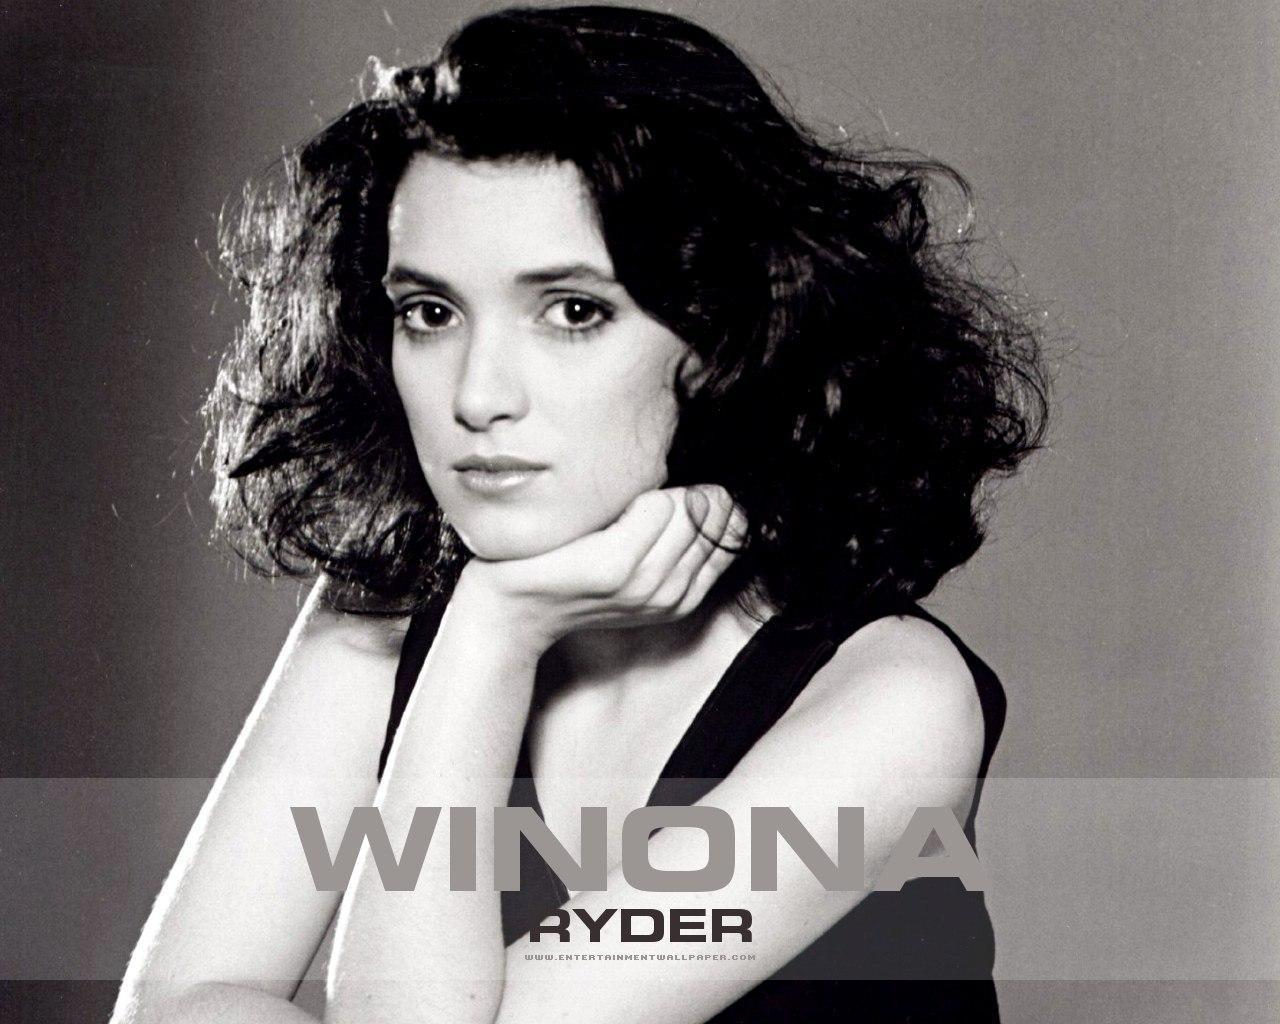 Winona Ryder Wallpaper 15505107 Fanpop